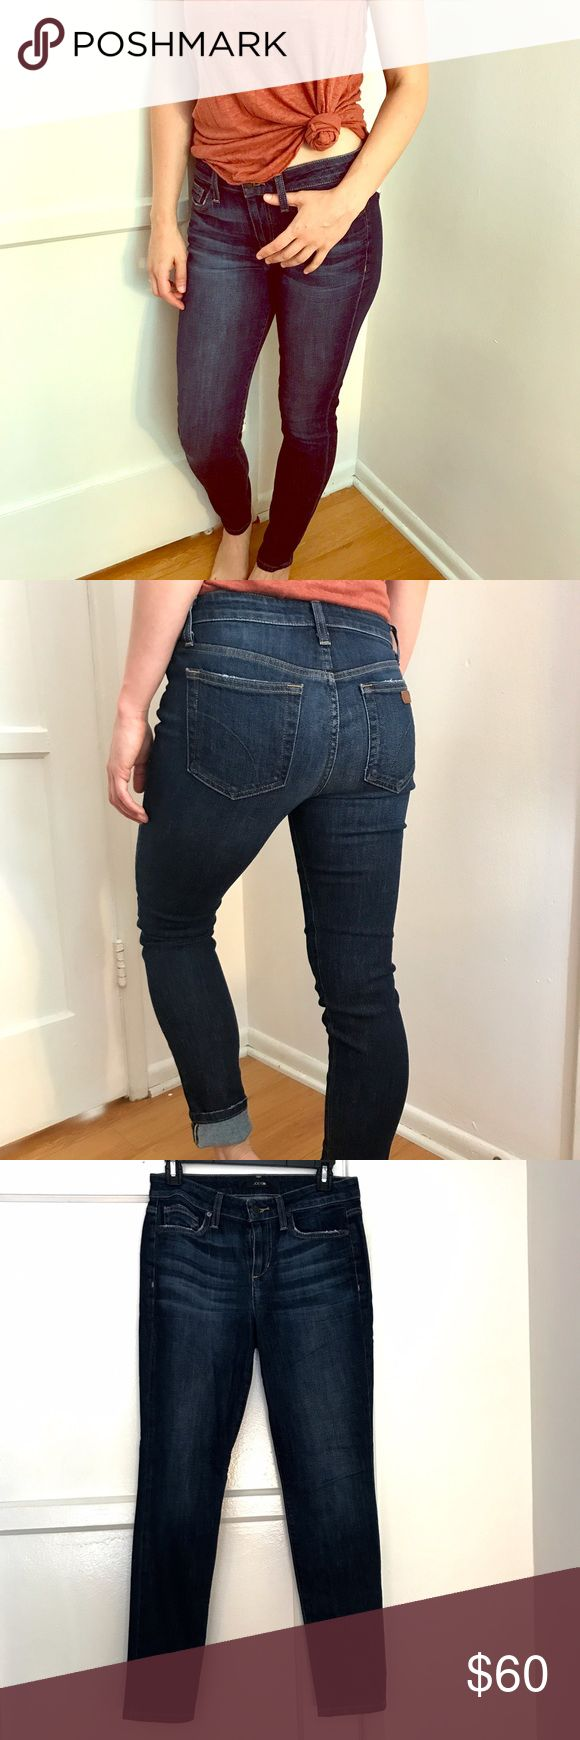 Joe's skinny ankle jeans These are petite skinny jeans that are perfect for my vertically challenged friends, and make a great cuffed option for my tall friends too. Joe's Jeans Jeans Skinny